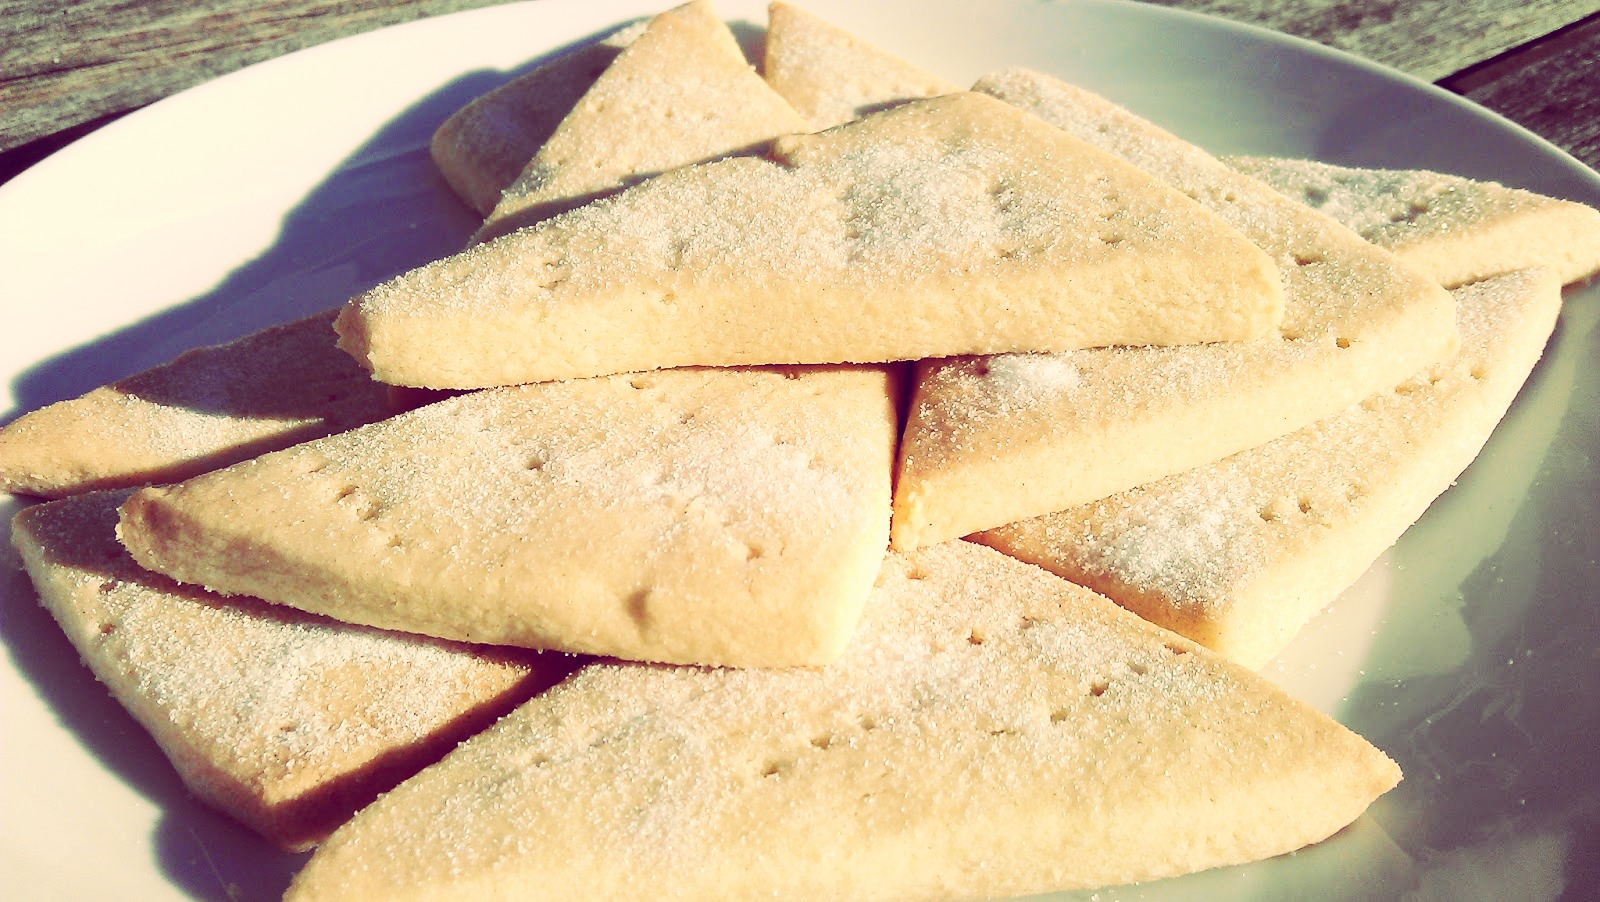 Ingredients 200g/7oz unsalted butter, at room temperature, cut into small cubes 100g/3½oz sugar, plus extra for sprinkling 1 teaspoon of vanilla extract (you can use other flavoured extracts too) 300g/10½oz plain flour, sifted, plus extra for dusting